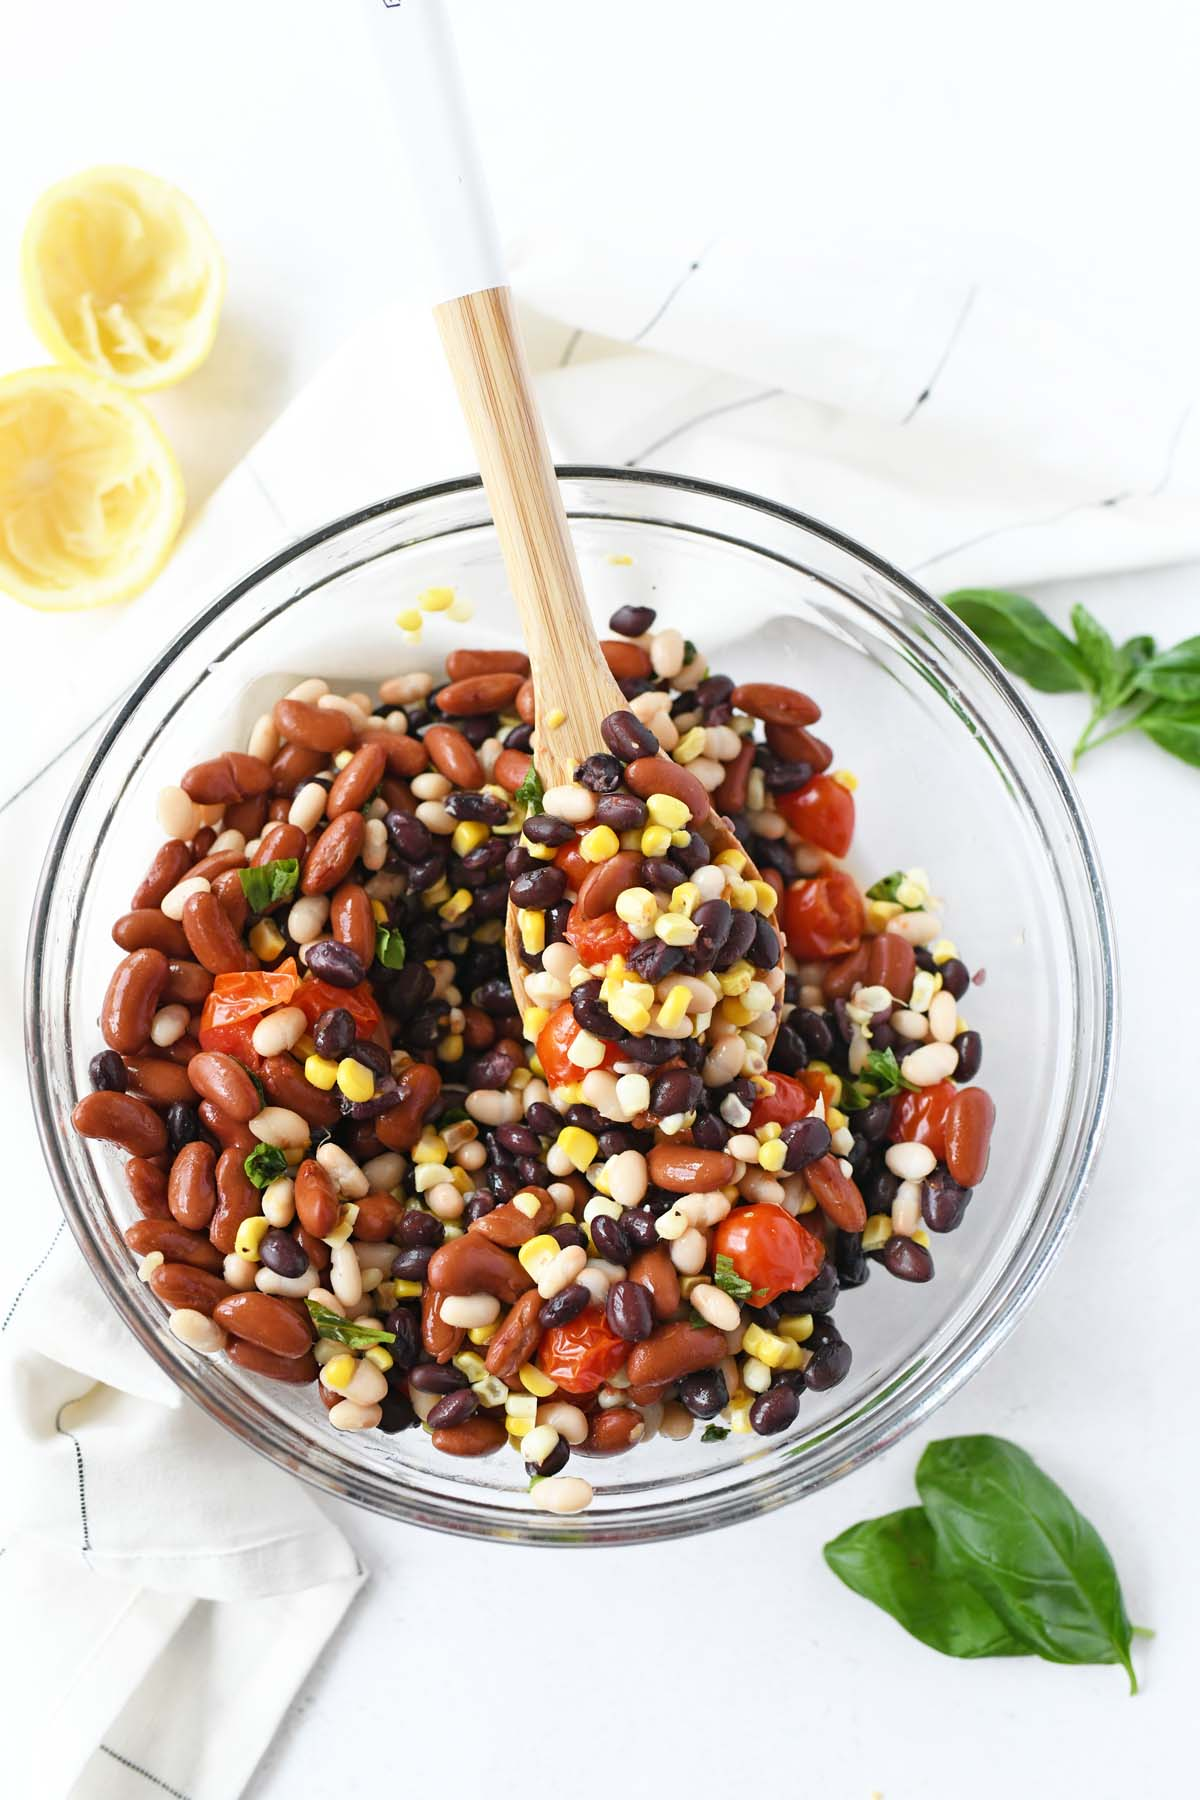 3 bean salad in a glass bowl with a wooden spoon.